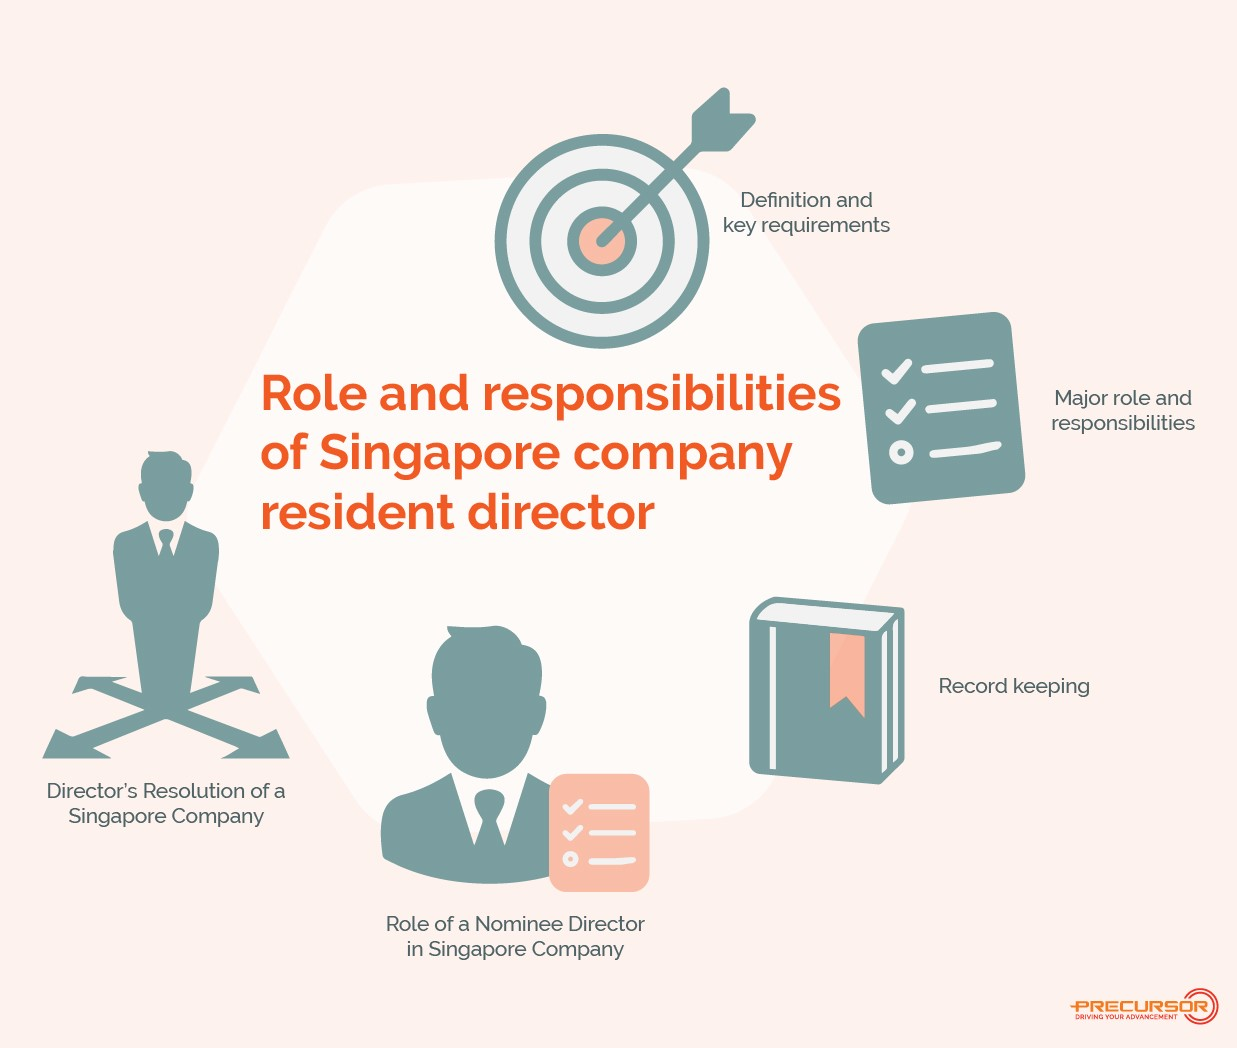 Role and Responsibilities of Singapore company resident director.